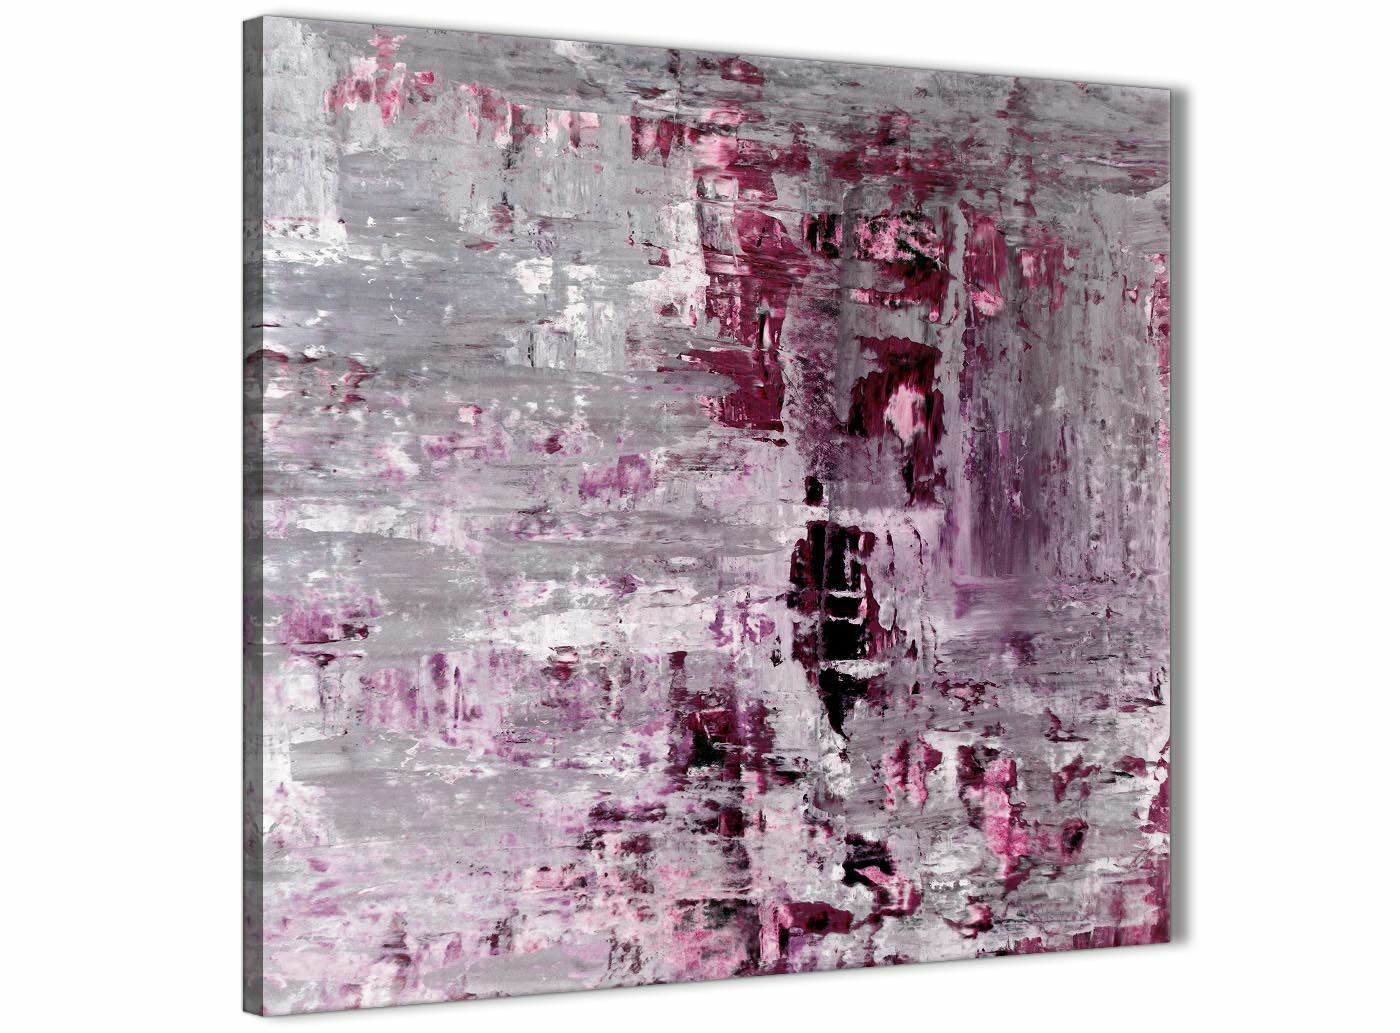 Plum grau Abstract malerei wand kunst drucken Canvas - Modern 79cm Square - 1s359l